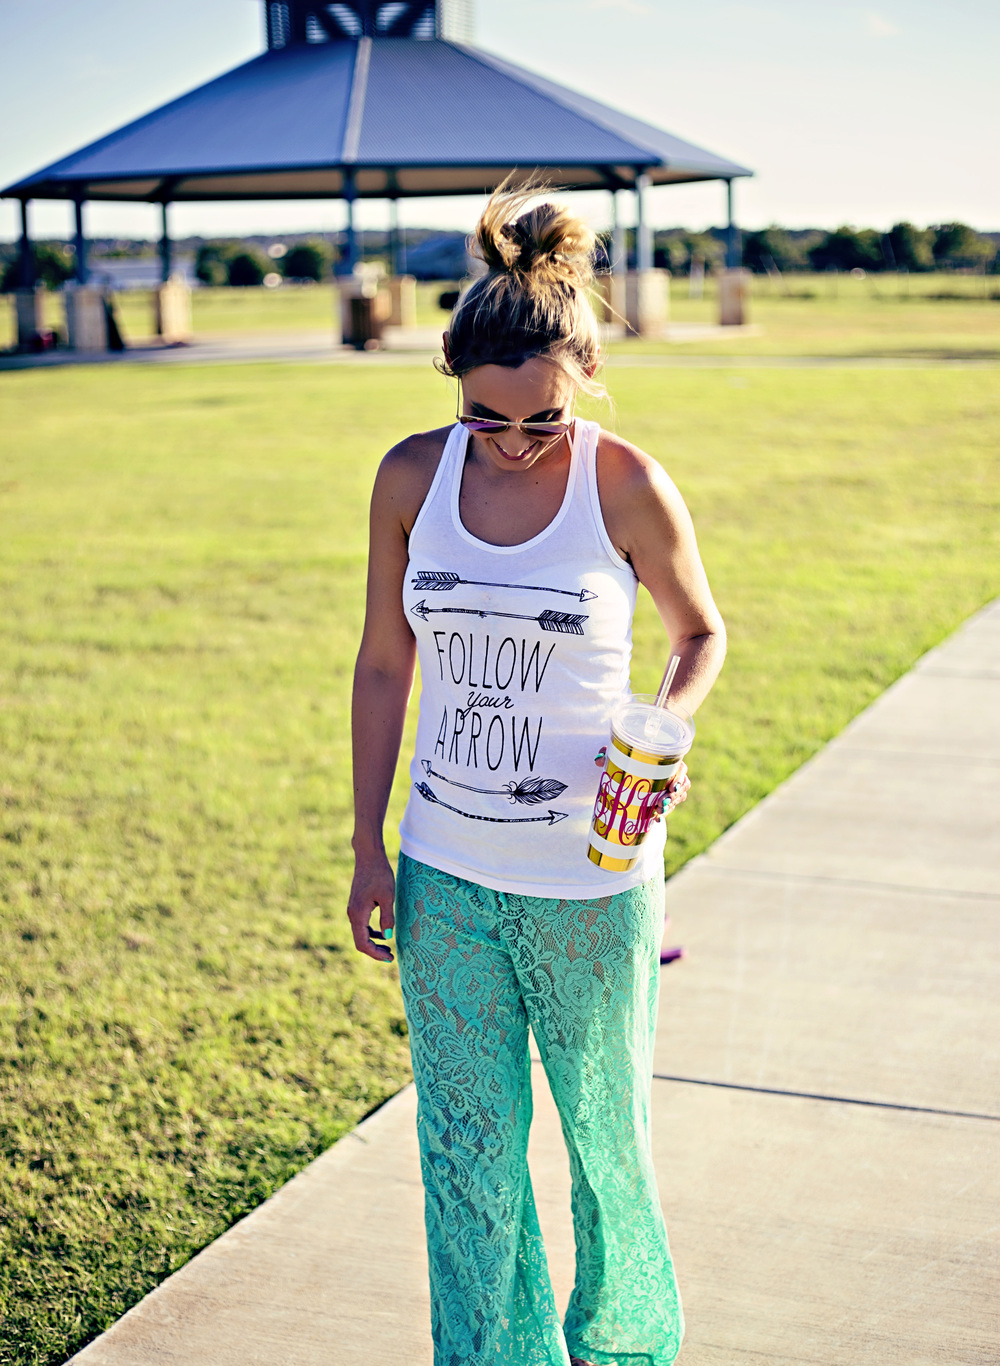 *Tank top-Daisy Dugies Boutique, Cup- Lucky Thread, pants- Sophie & Trey